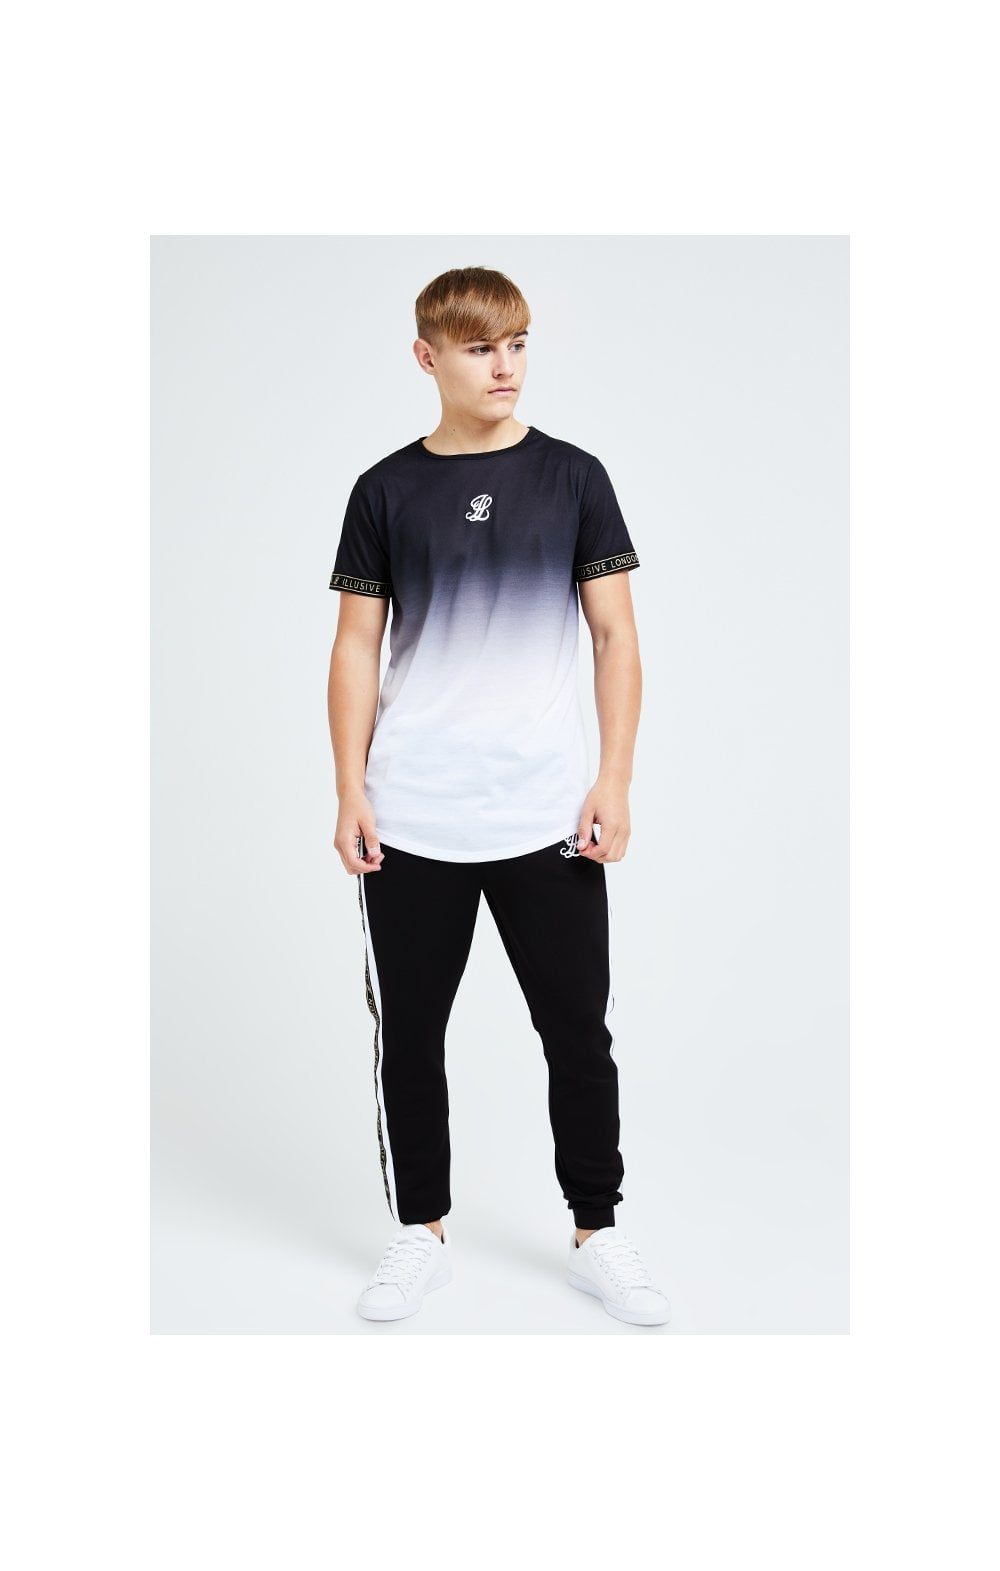 Load image into Gallery viewer, Illusive London Diverge Fade Tech Tee - Black Gold & White (2)